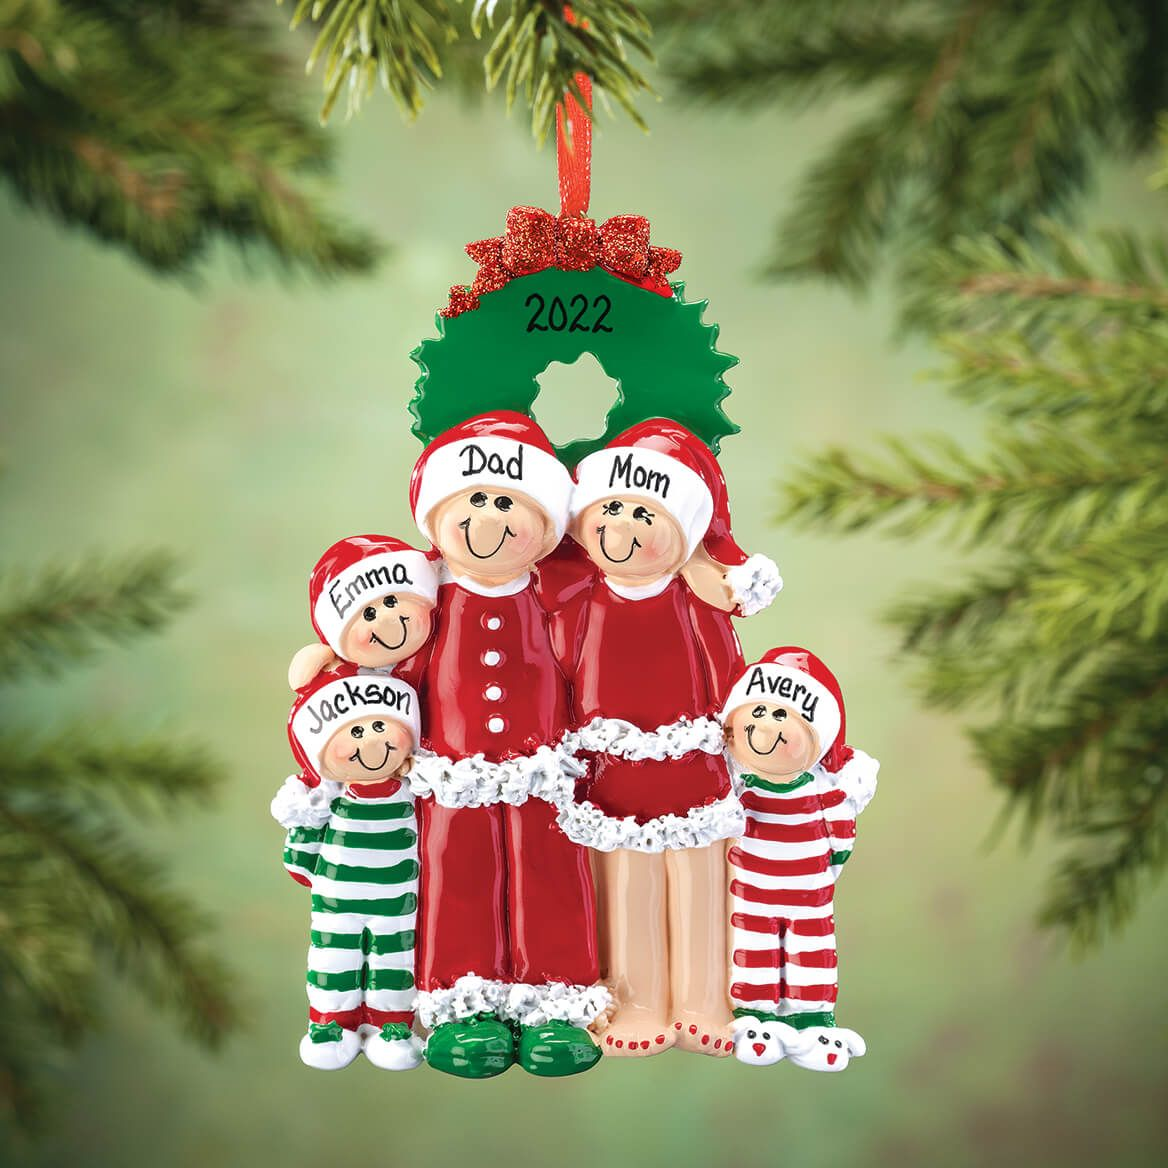 Personalized Christmas Eve Family Ornament-364874